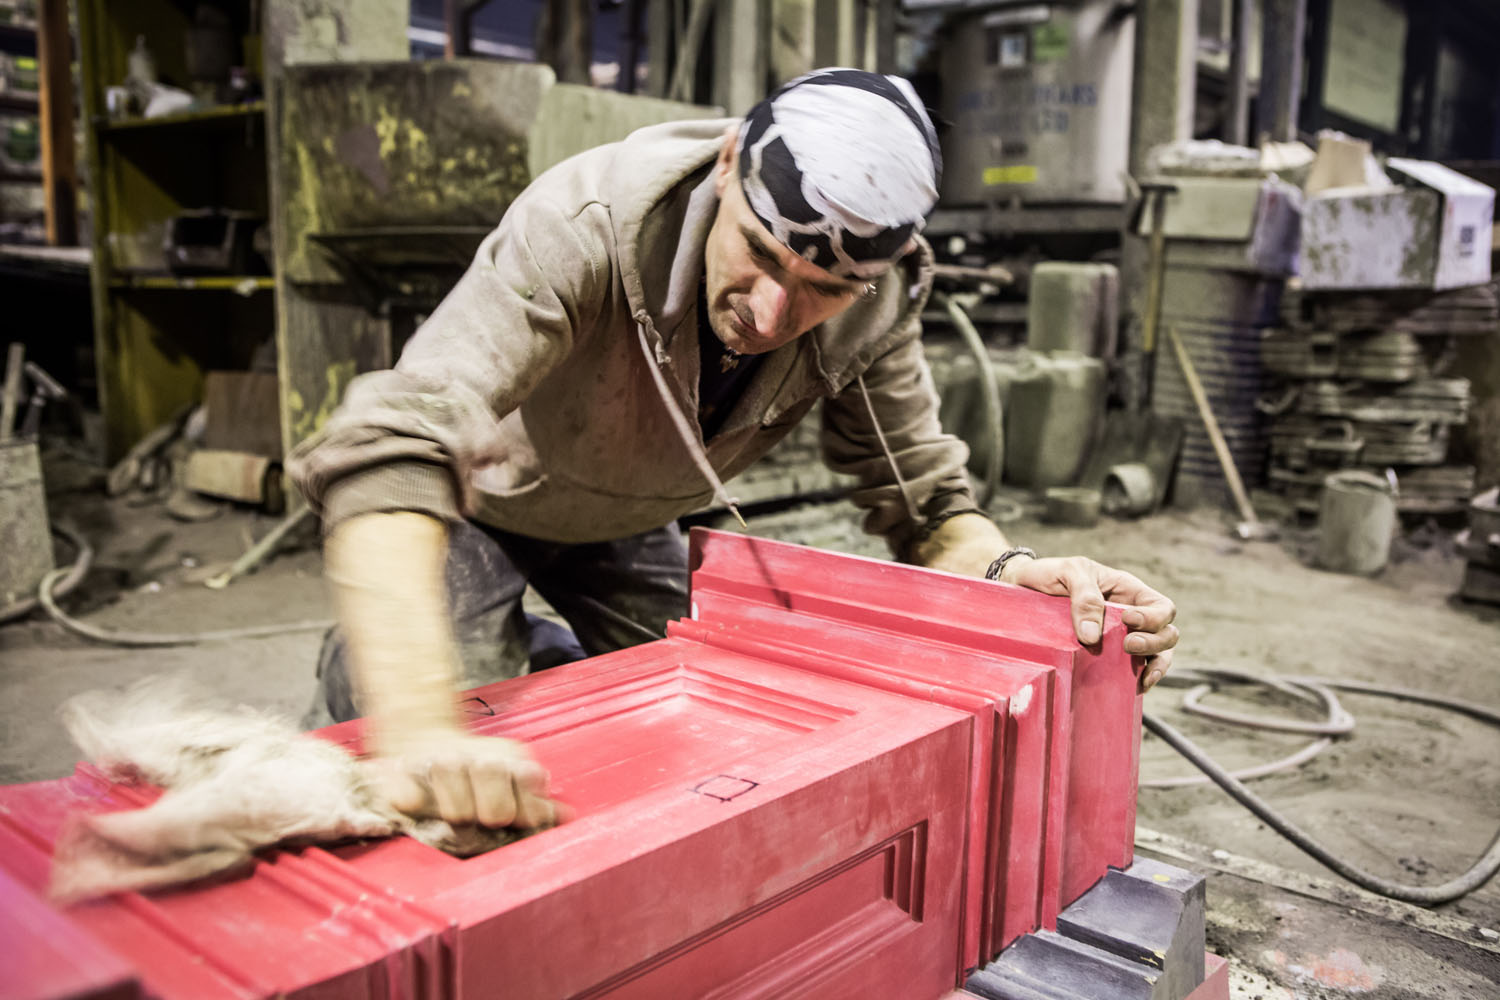 Preparing moulds for casting. Brighton i360 by Marks Barfield Architects.